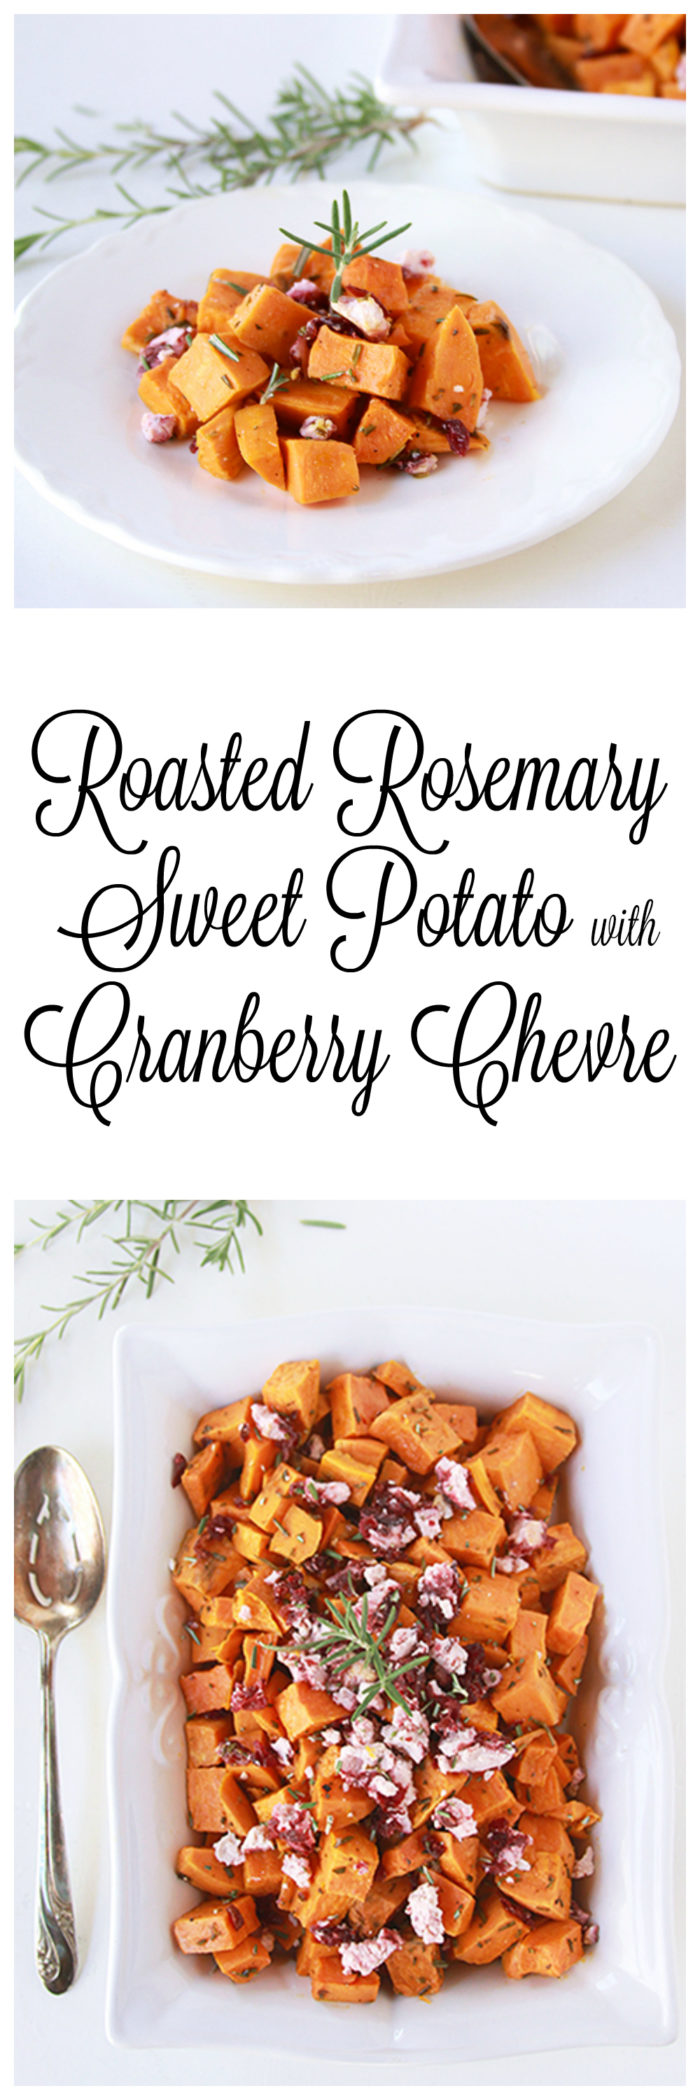 Roasted Rosemary Sweet Potato with Cranberry Chevre on www.cookingwithruthie.com if you love sweet potatoes, rosemary, and chevre goat cheese!